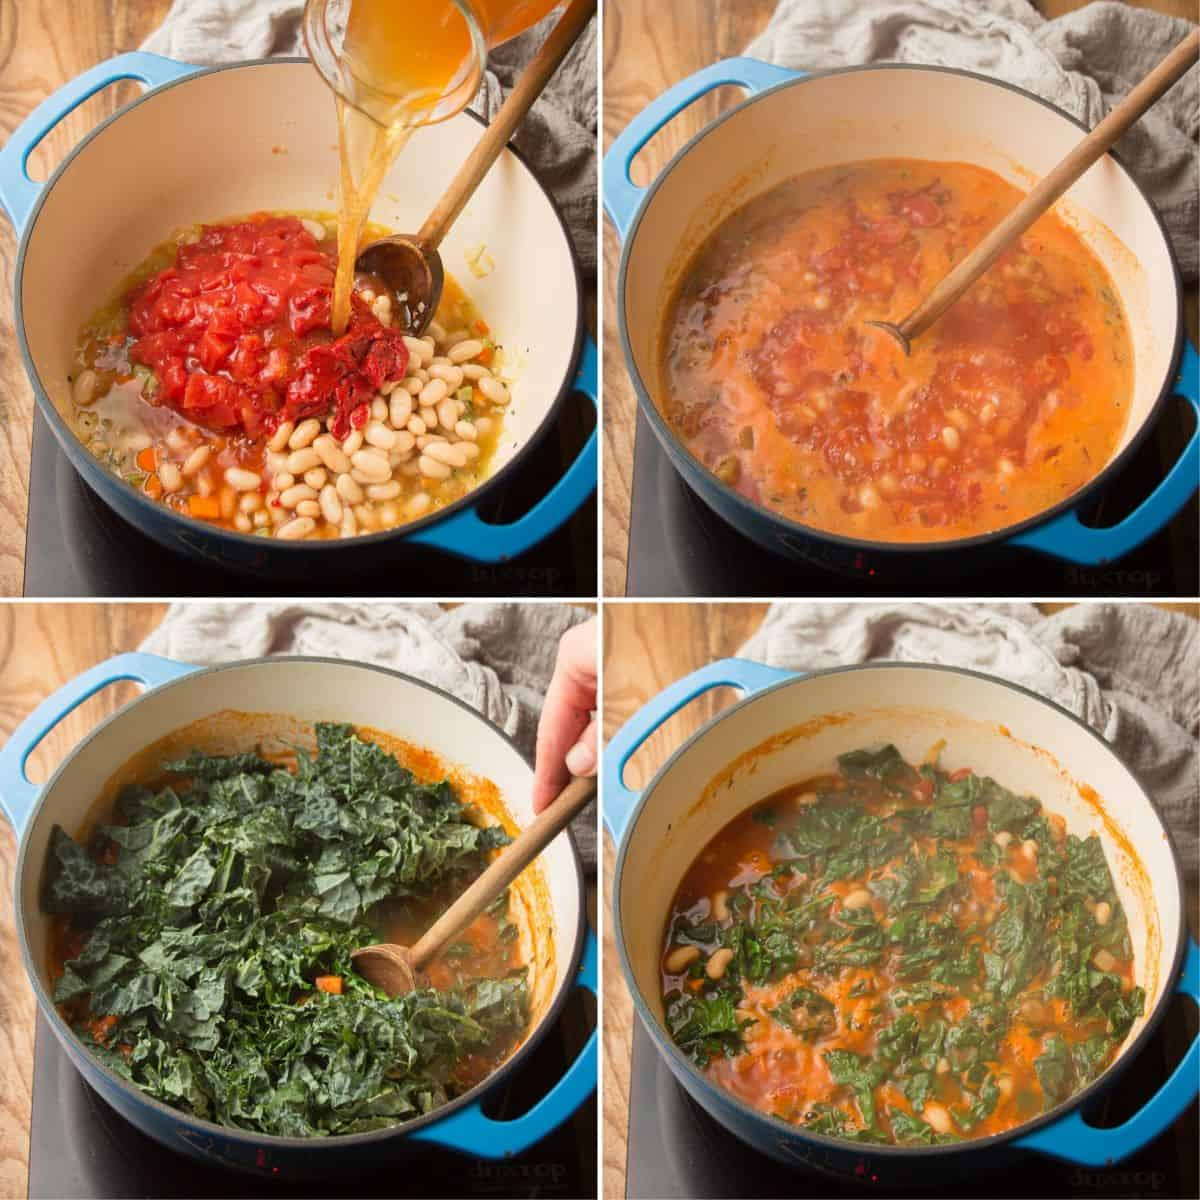 Collage Showing Steps 5-8 for Making Ribollita: Broth, Tomatoes, and Beans, Simmer, Add Kale, and Simmer